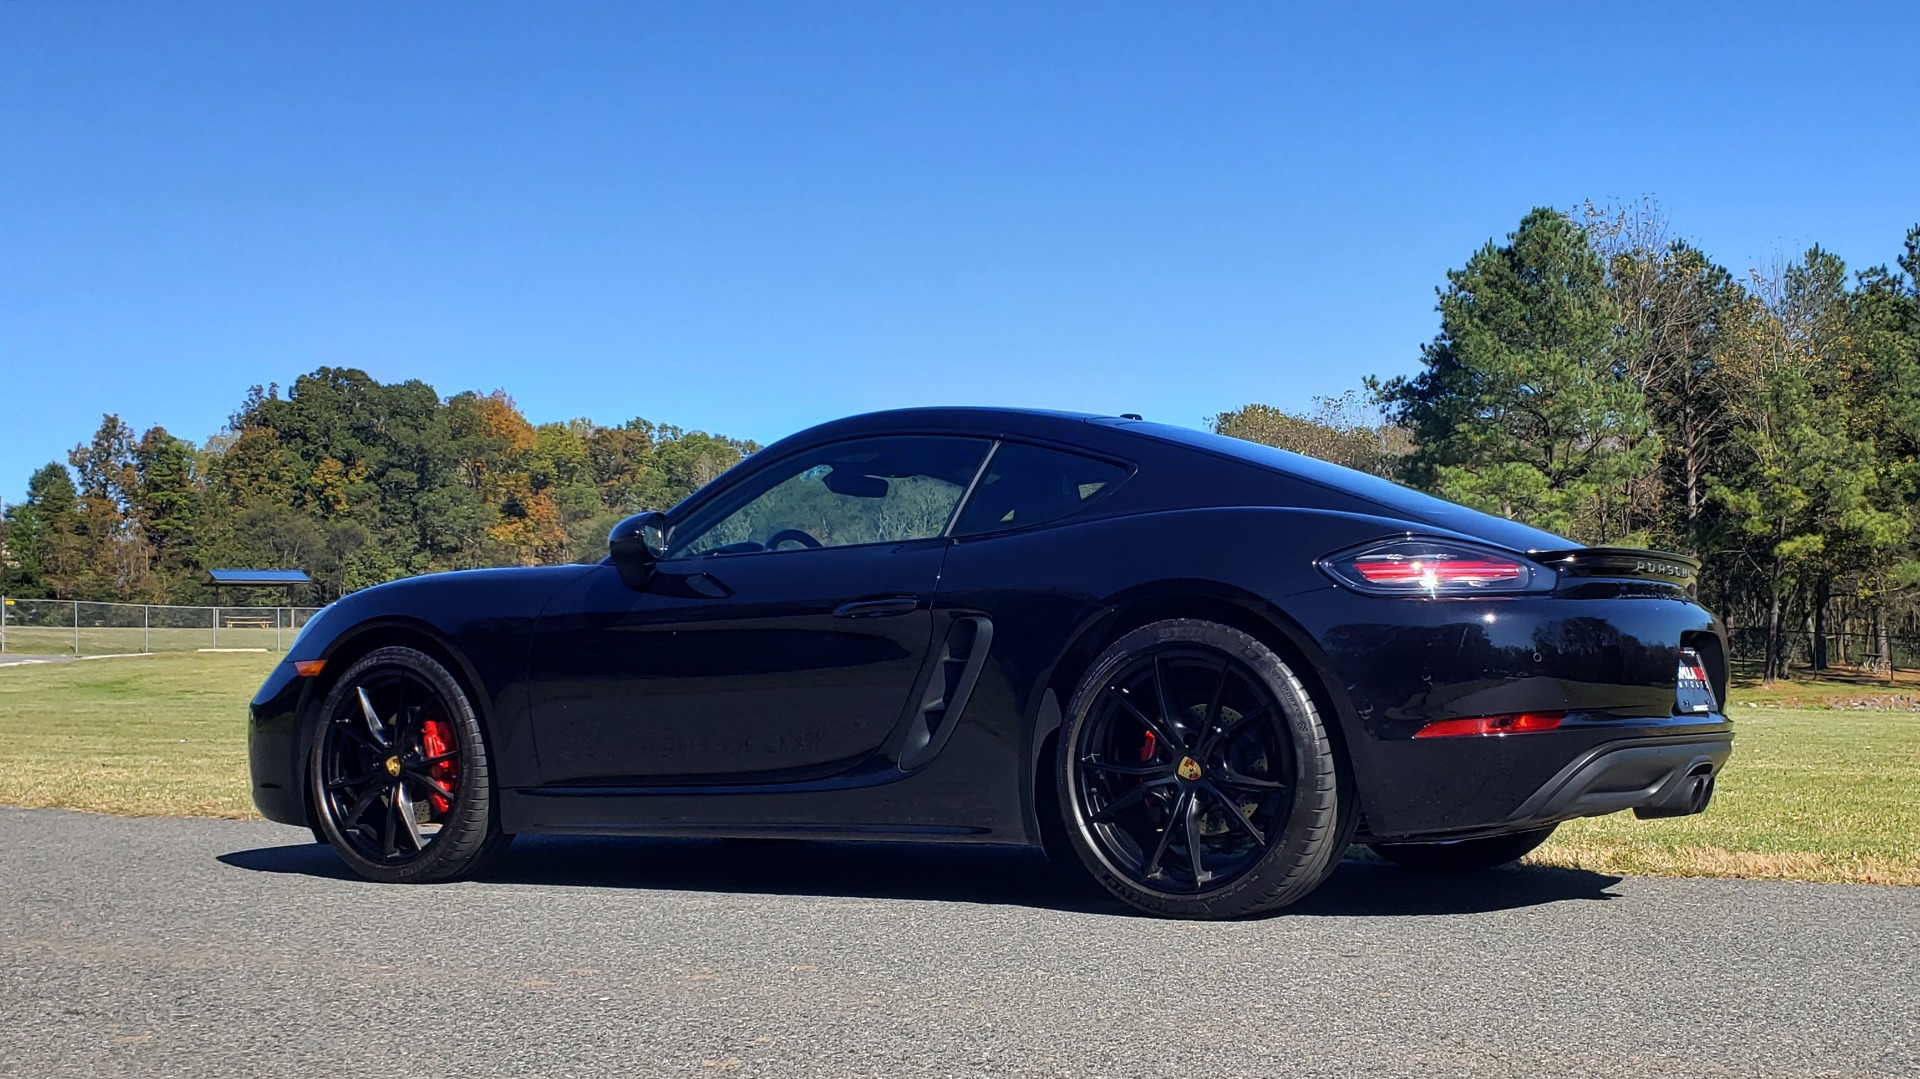 Used 2019 Porsche 718 CAYMAN S COUPE / PDK TRANS / LCA / BOSE / HTD STS / LIGHT DESIGN PKG for sale $67,999 at Formula Imports in Charlotte NC 28227 4